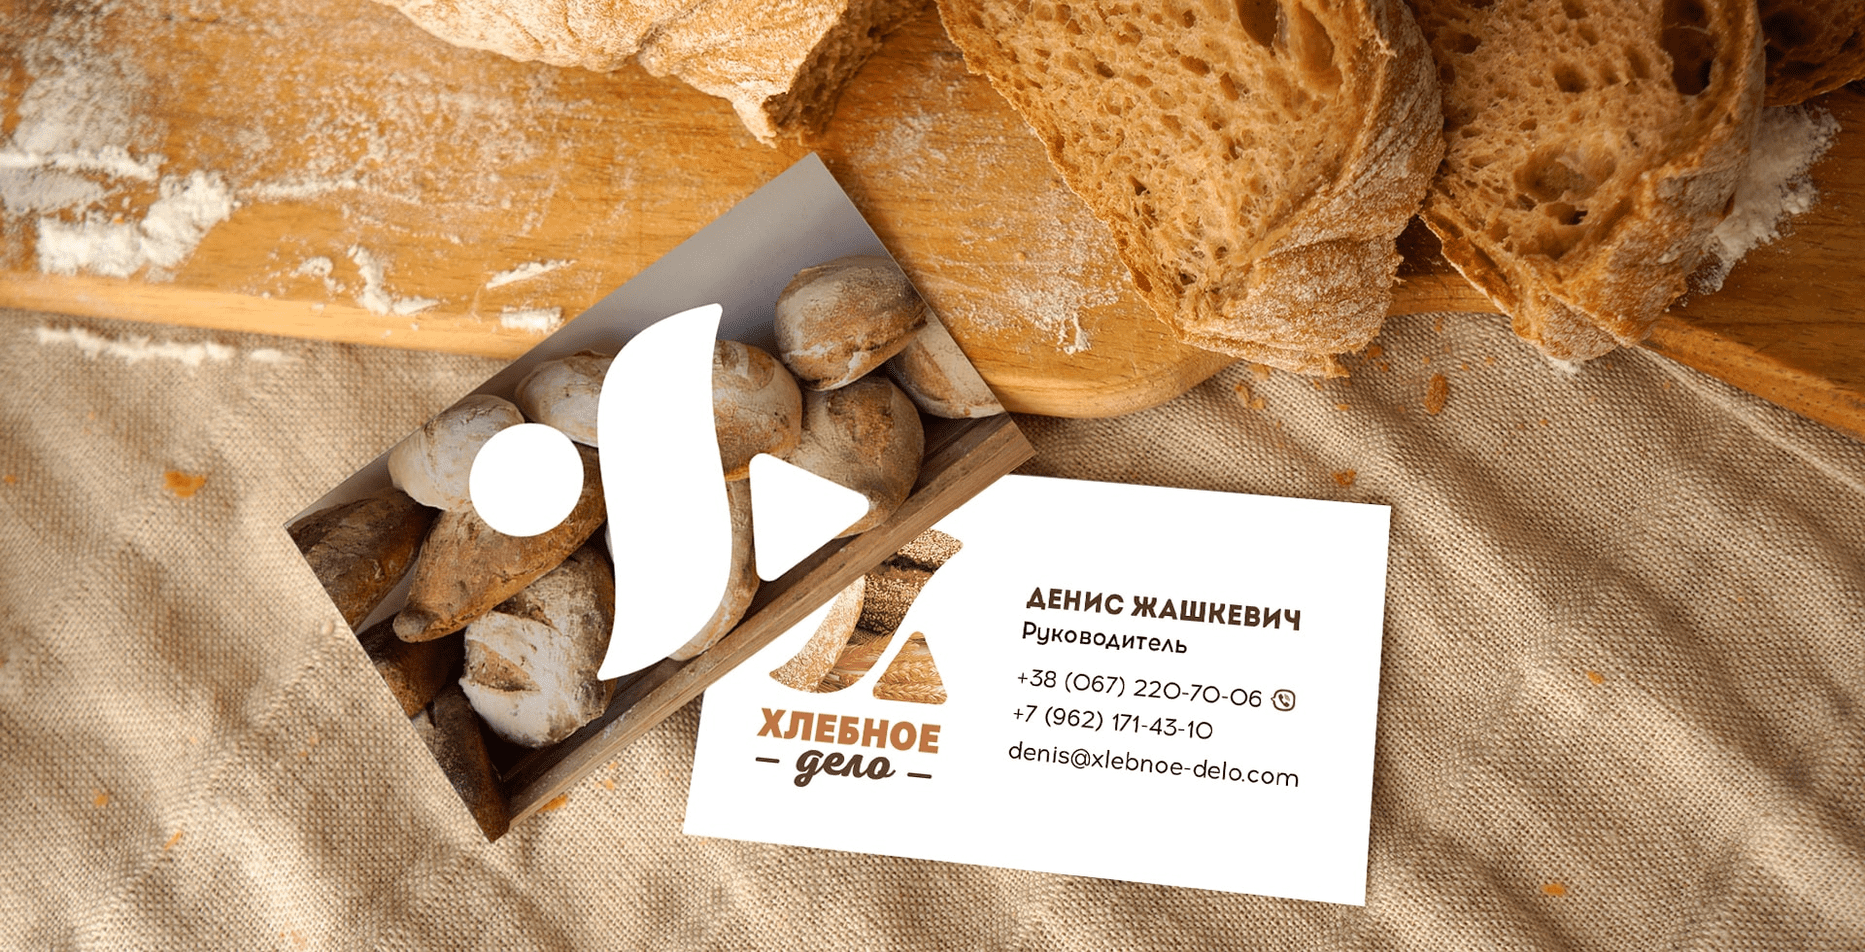 Case: logo design, branding and marketing kit for the bread business — Rubarb - Image - 9